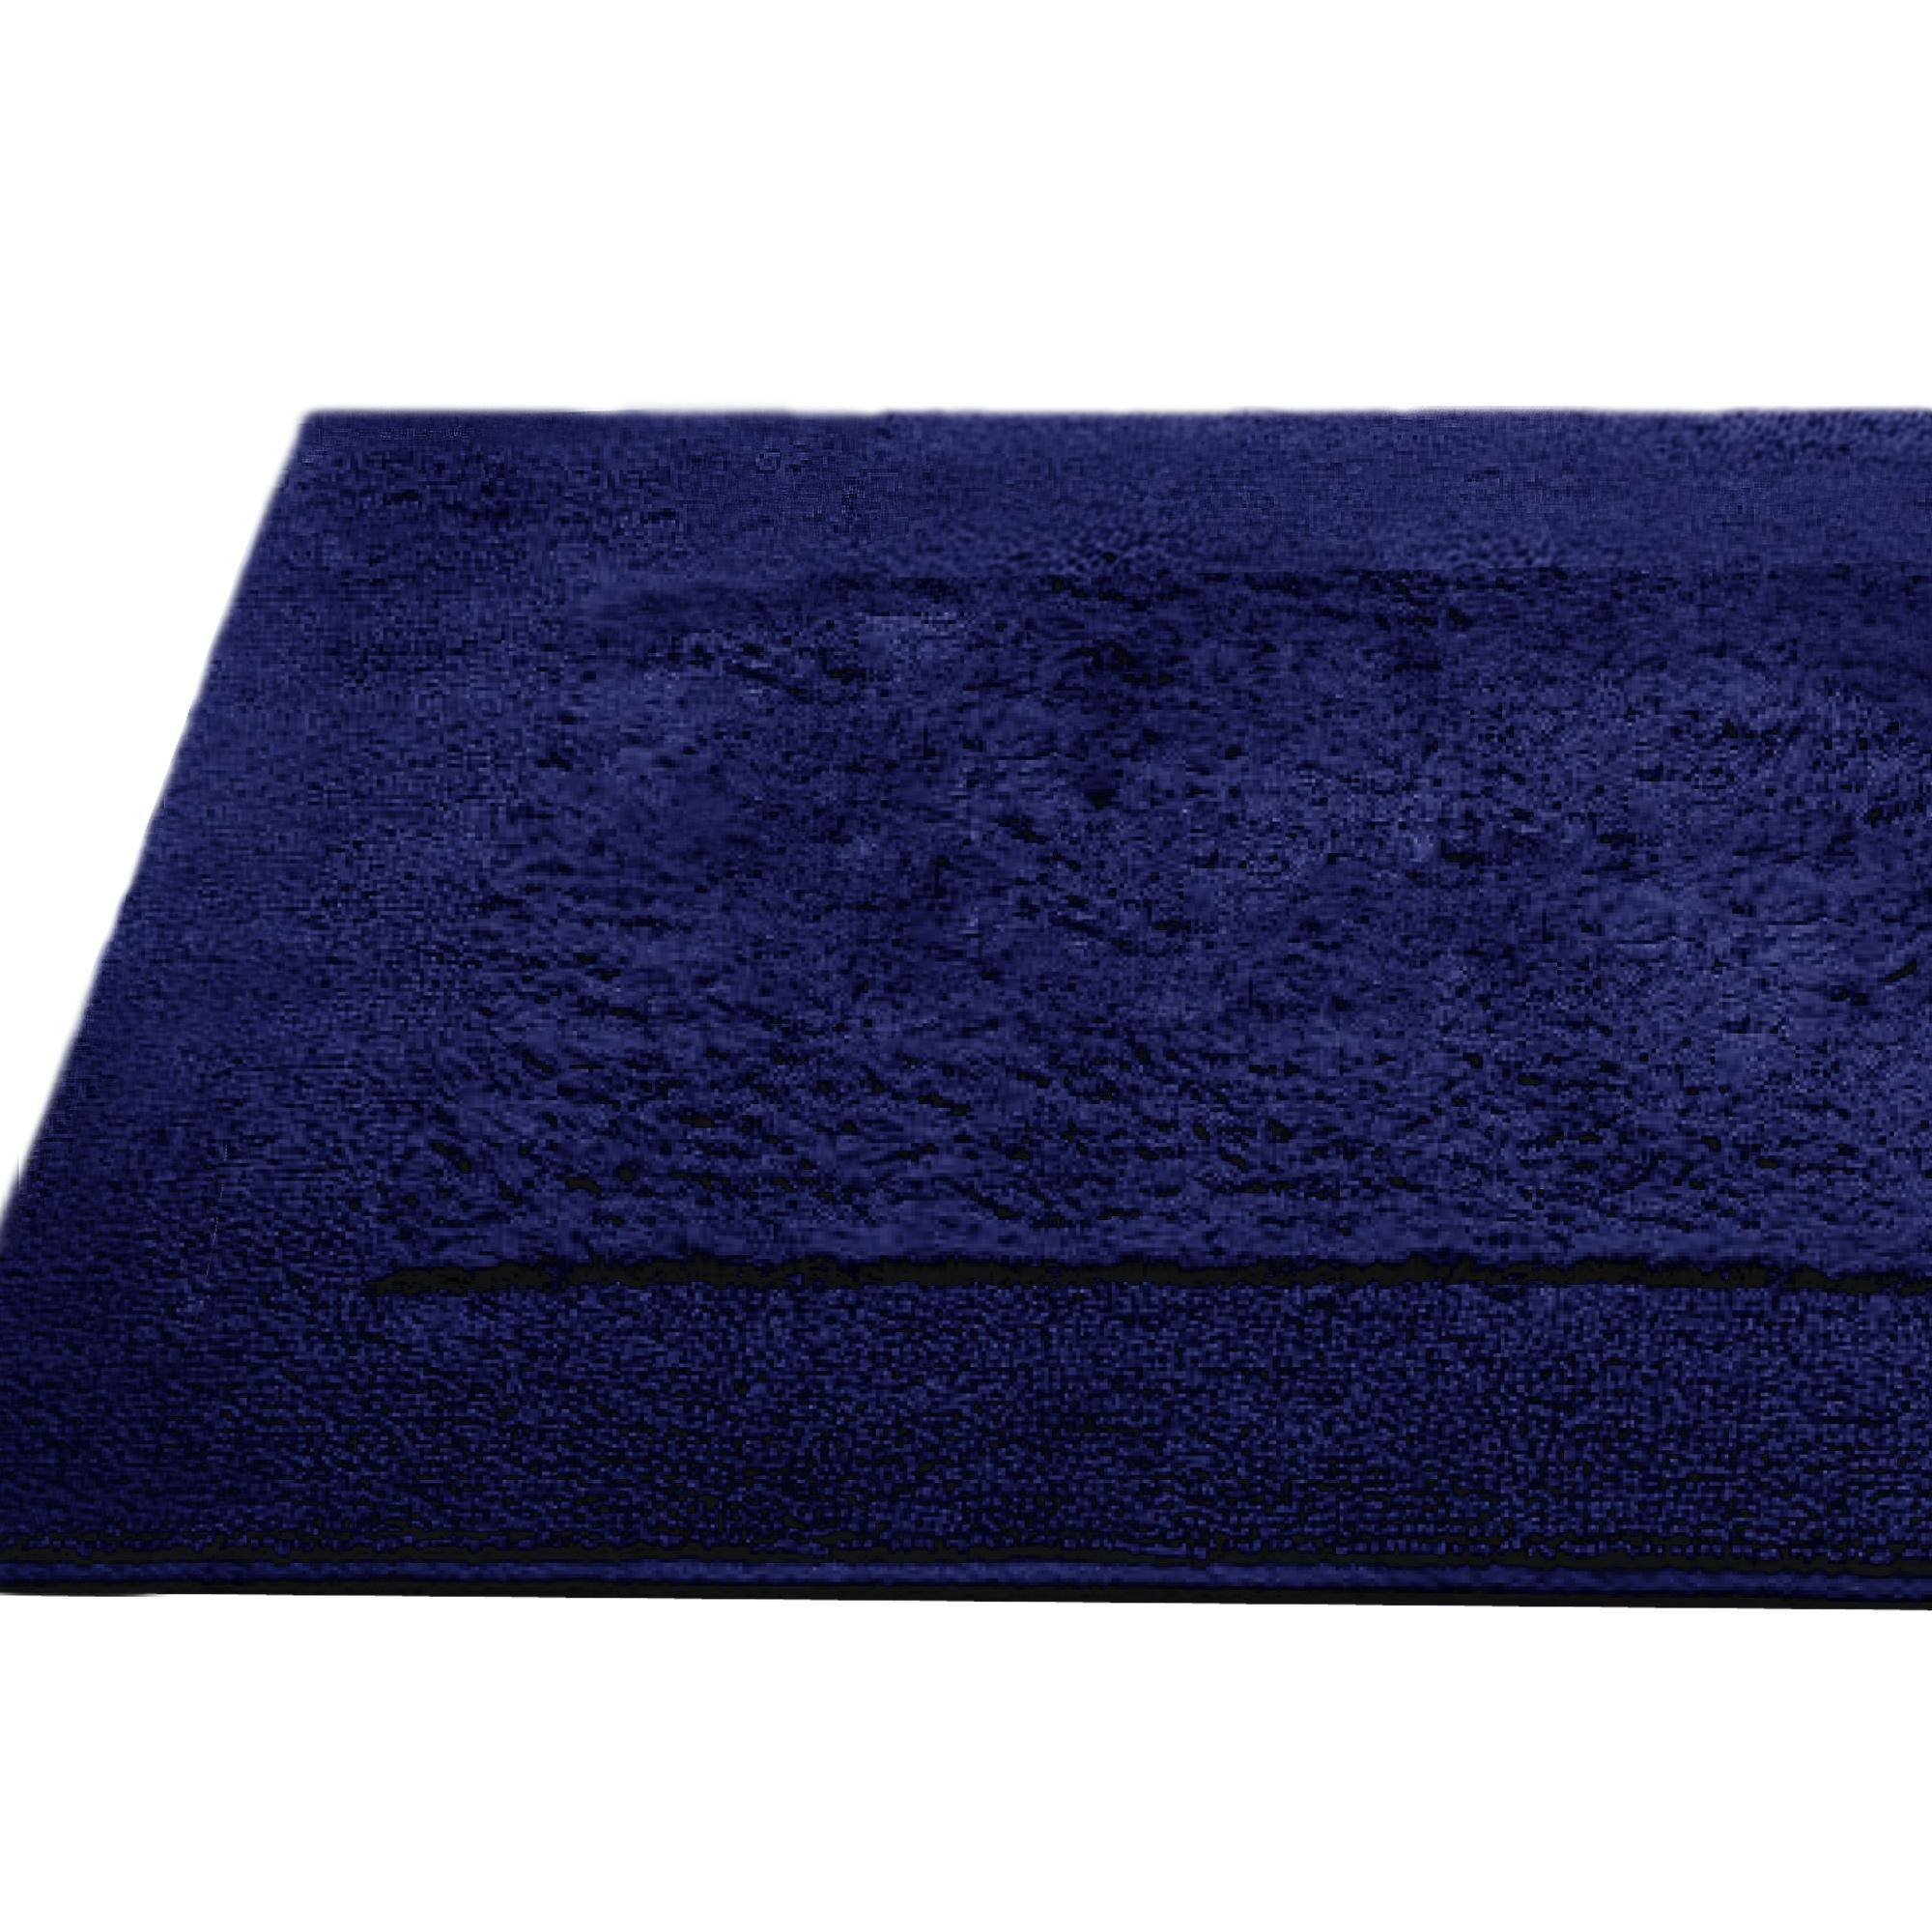 tapis de bain 70x120cm coton uni dream bleu marine linnea vente de linge de maison. Black Bedroom Furniture Sets. Home Design Ideas